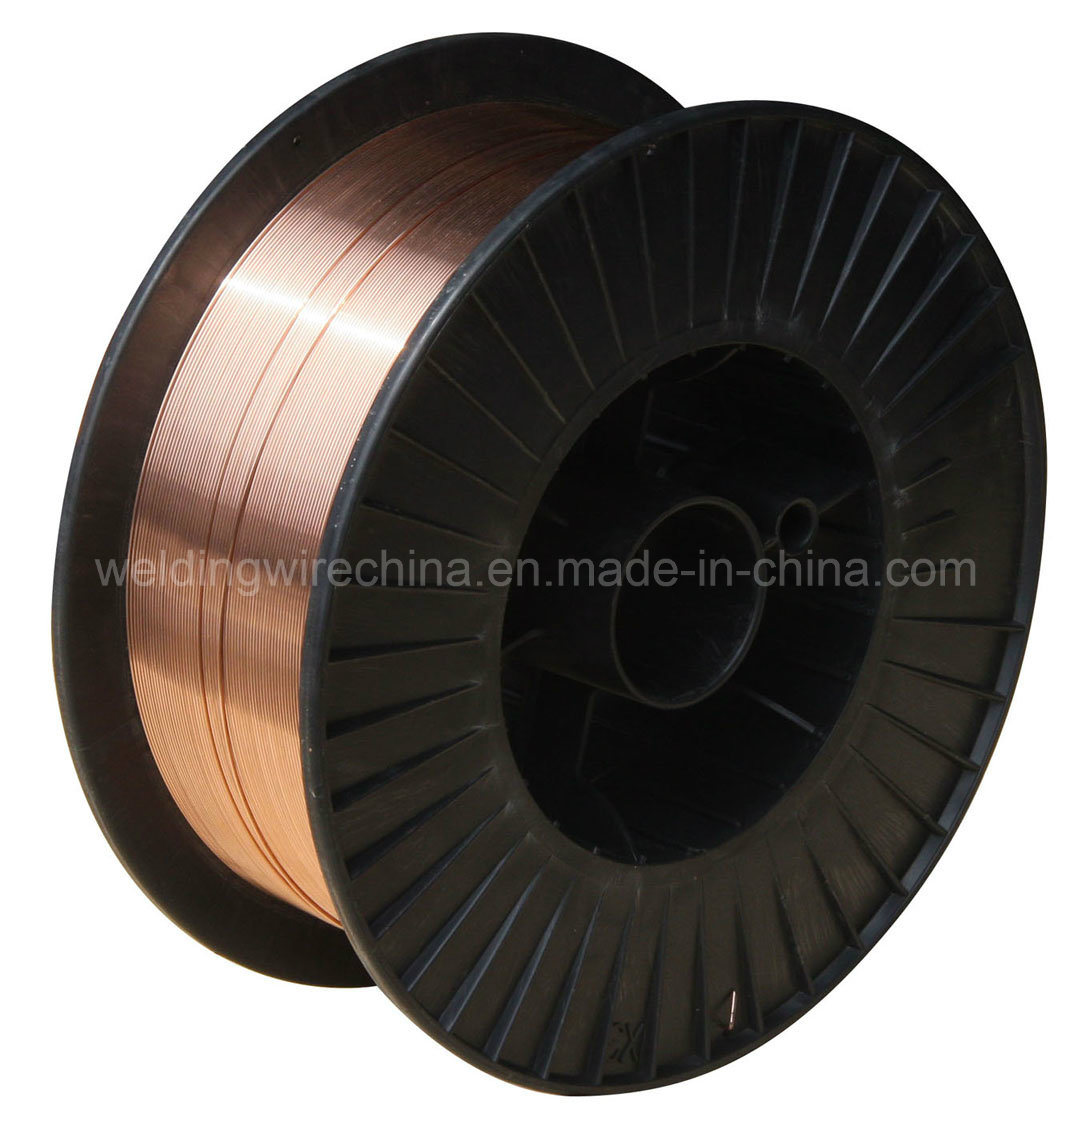 Pvc Welding Cable : China mig mag co gas shielded mm kg plastic spool